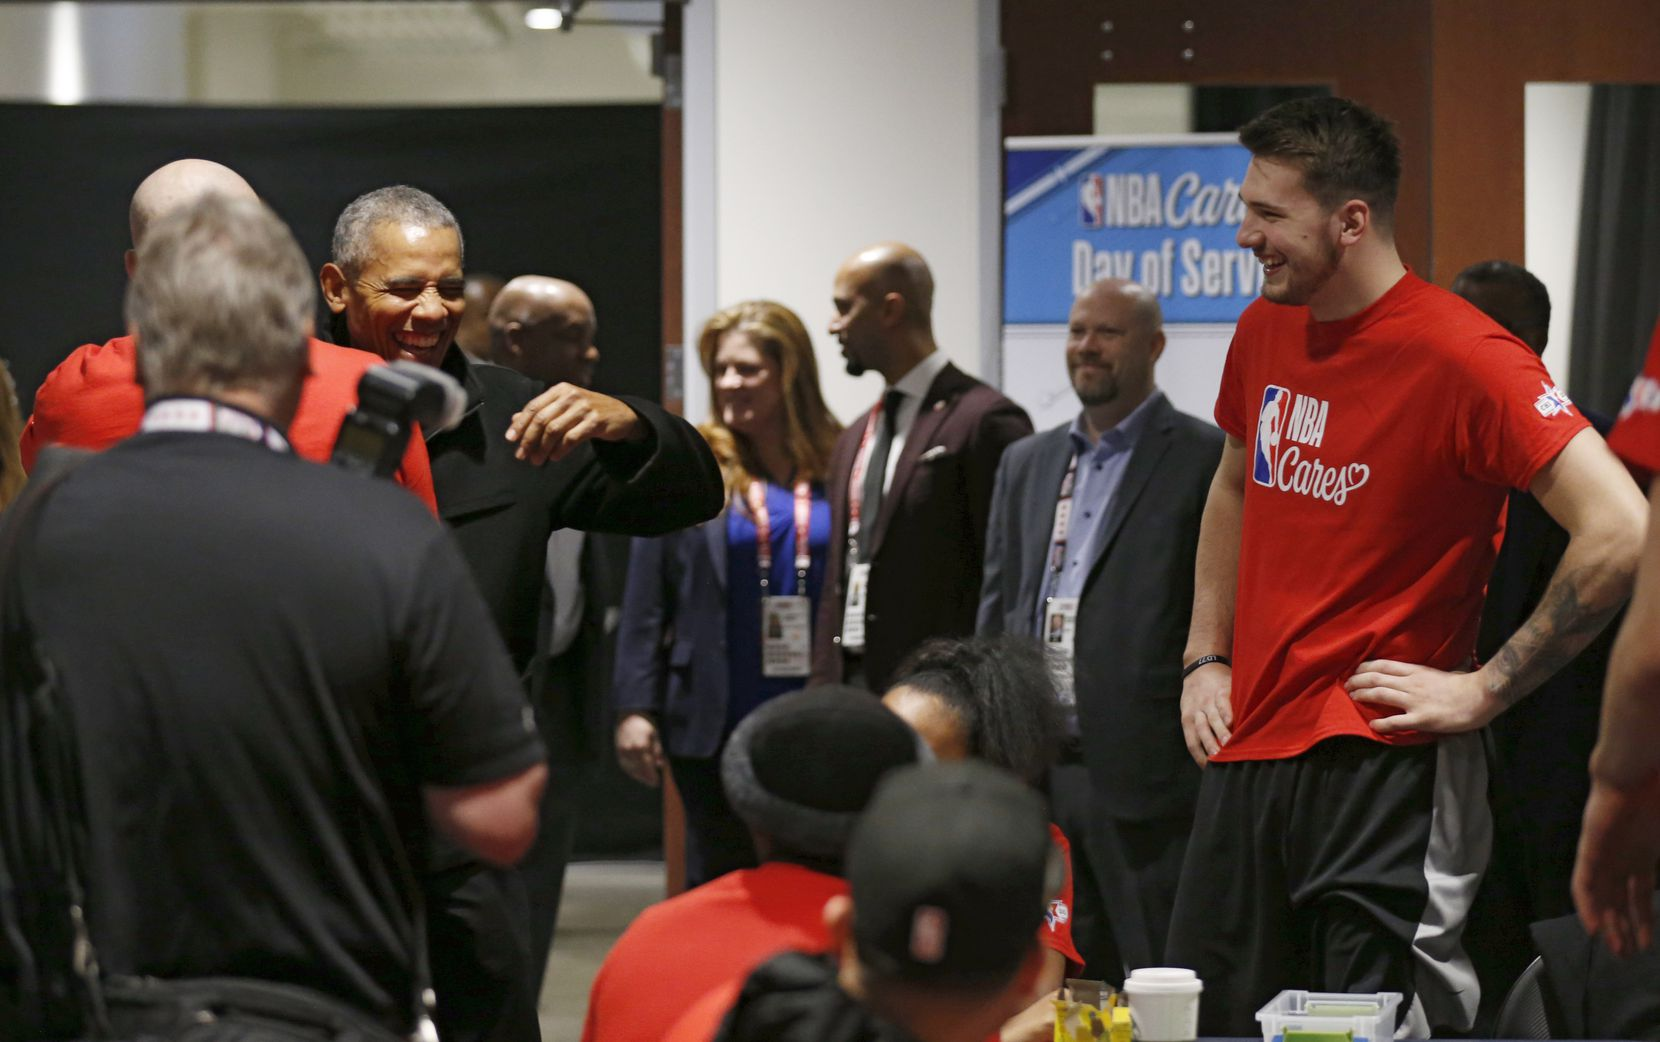 Former President Barack Obama jokes with Los Angeles Lakers assistant coach Jason Kidd as Dallas Mavericks forward Luka Doncic (77) looks on during a NBA Cares Day of Service event during NBA All Star 2020 at Wintrust Arena in Chicago on Friday, February 14, 2020.